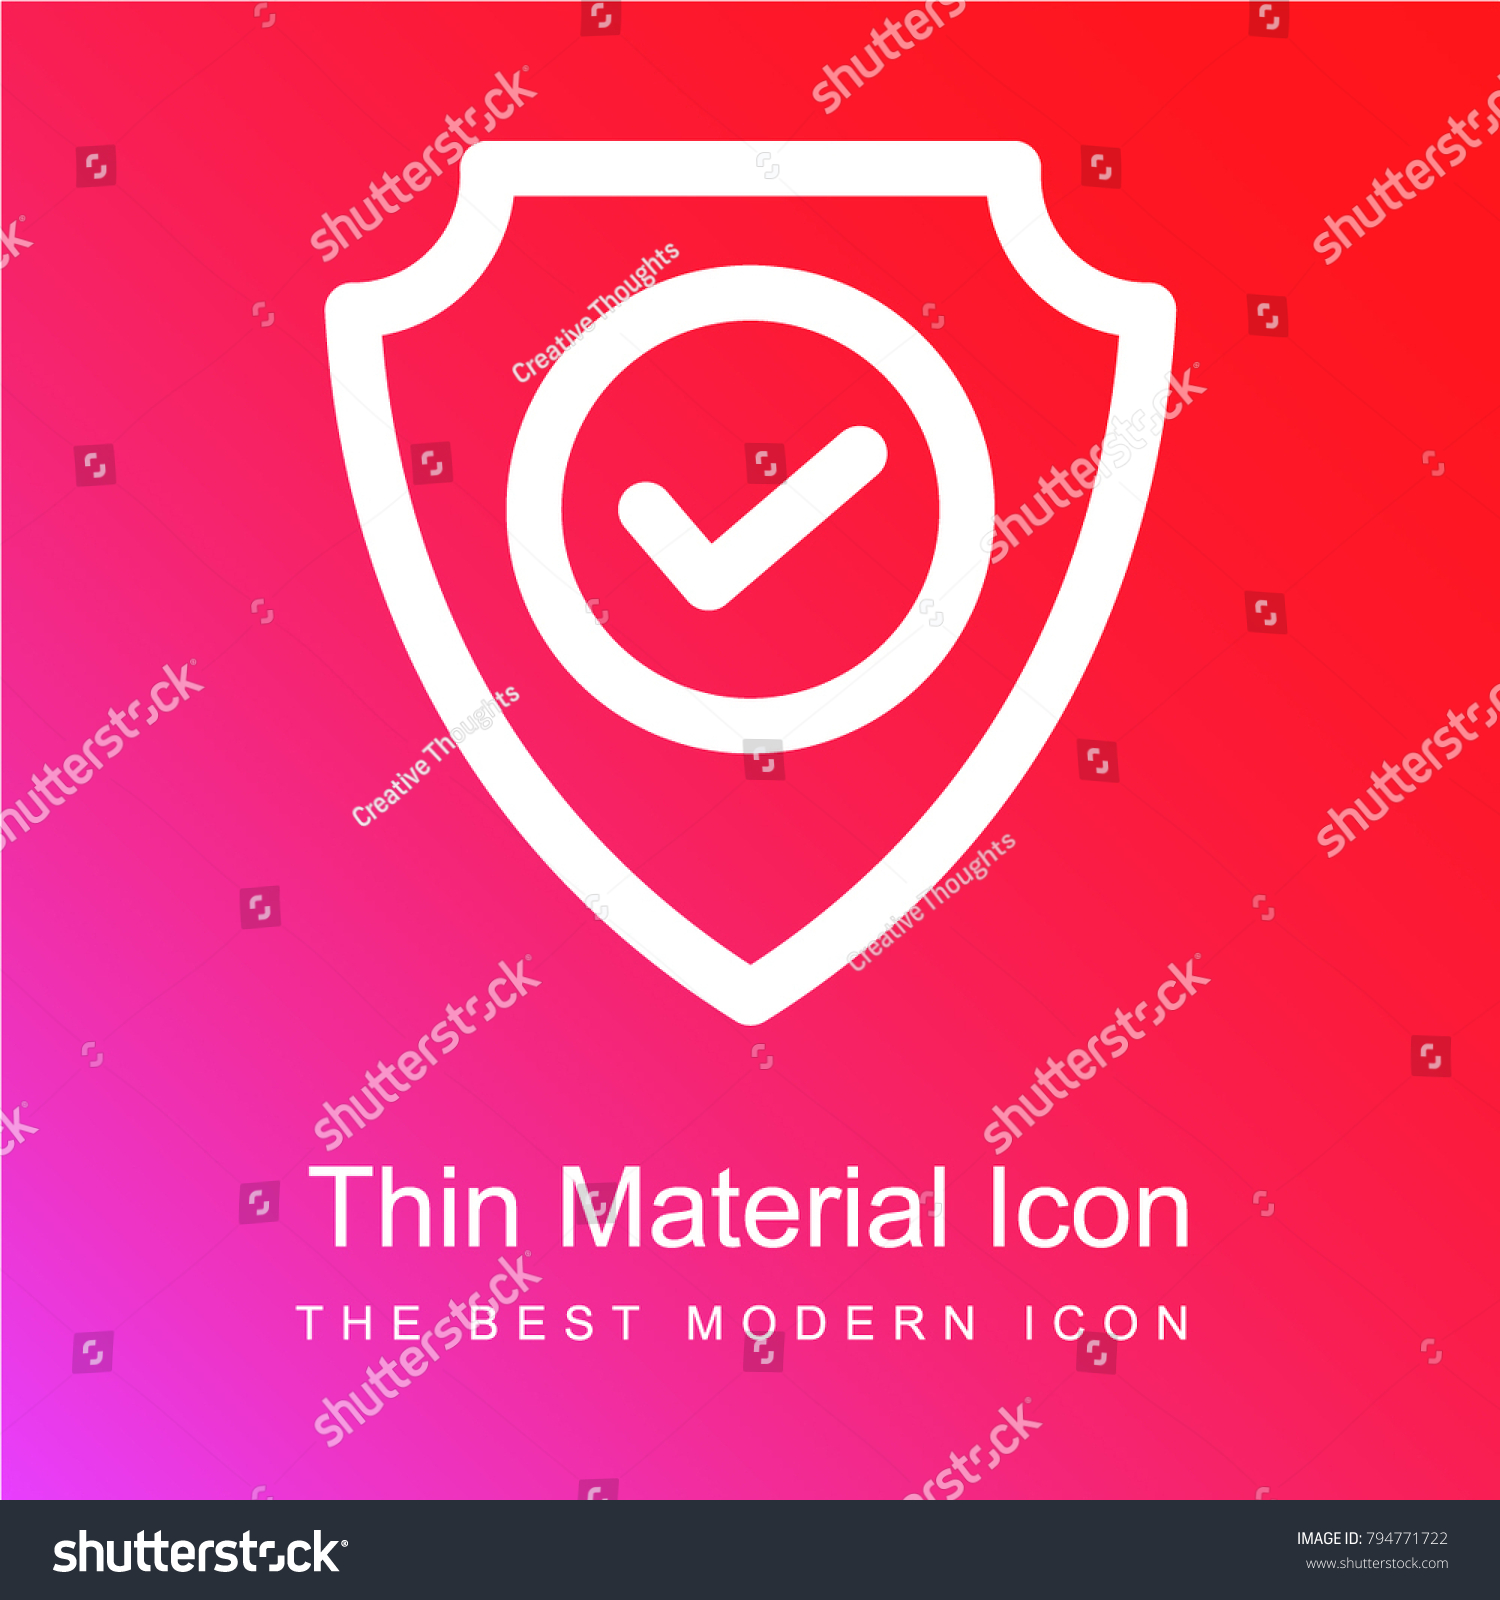 Safe Zone Red Pink Gradient Material Stock Vector Royalty Free